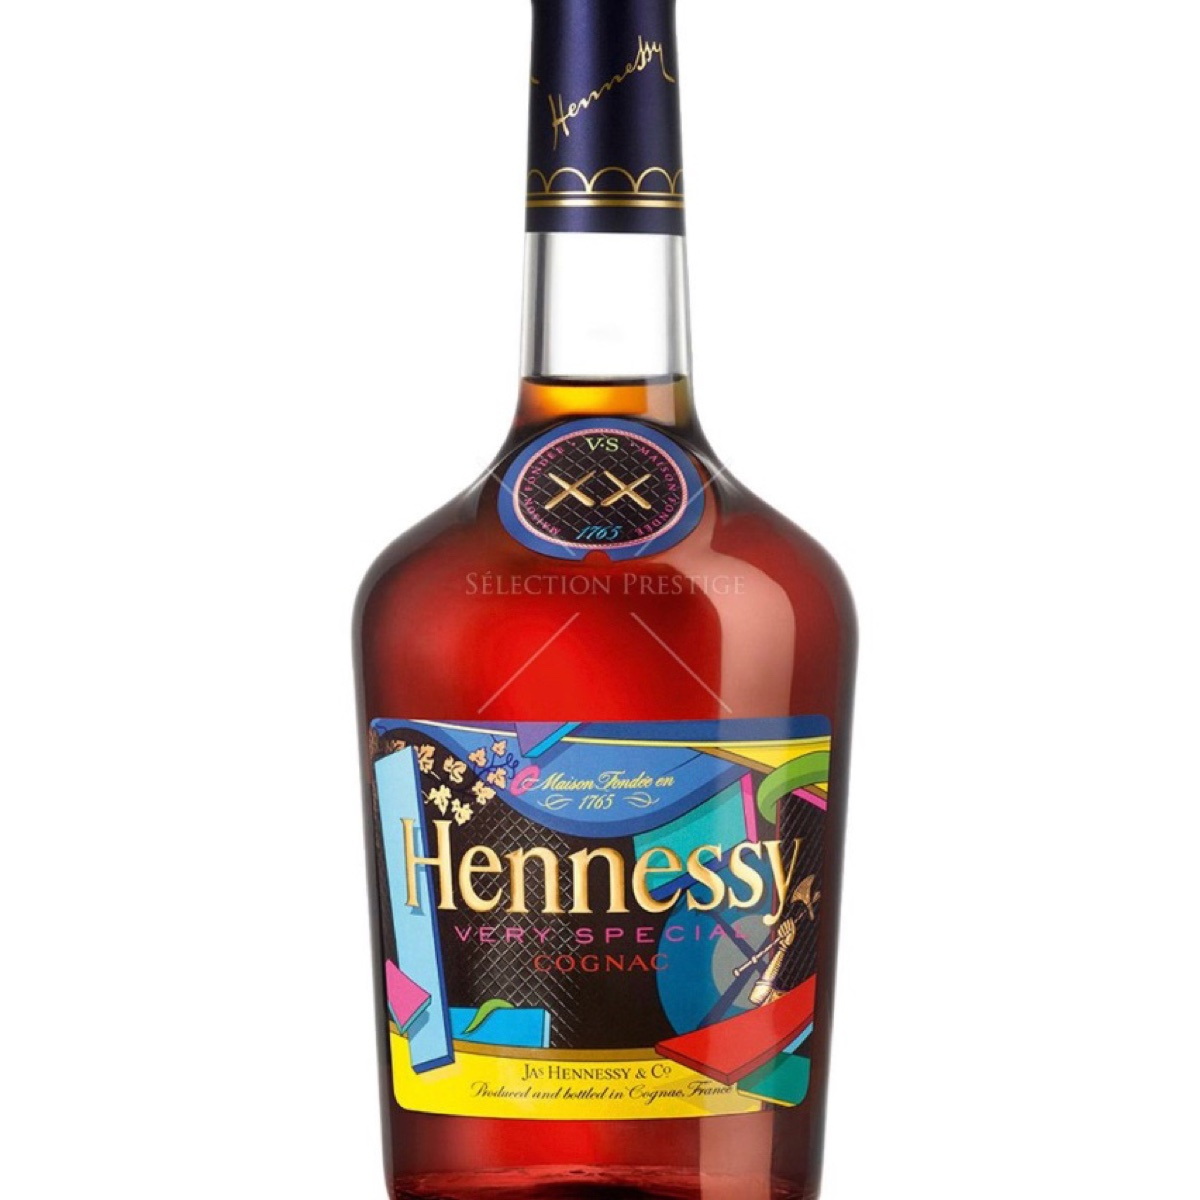 Kaws Hennessy limited edition